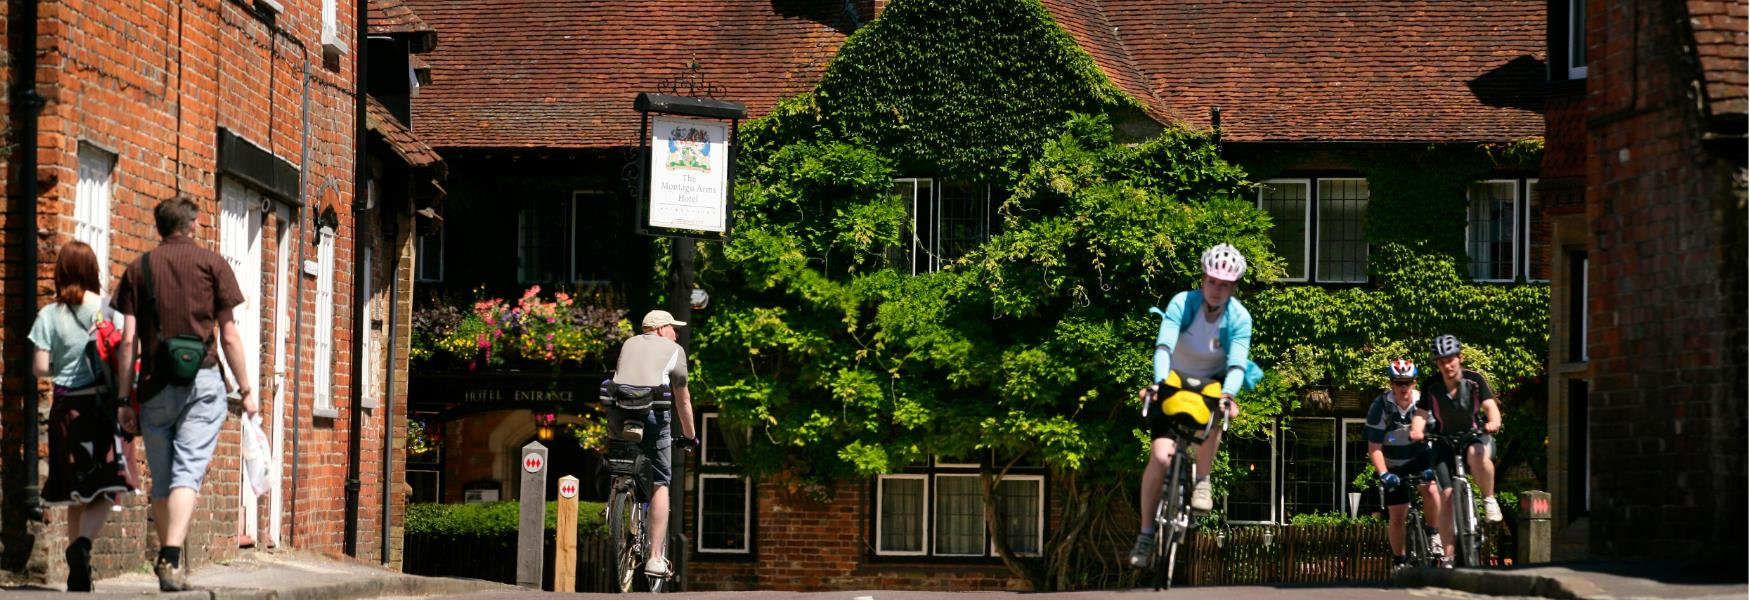 Cycling through Beaulieu Village High Street in the New Forest